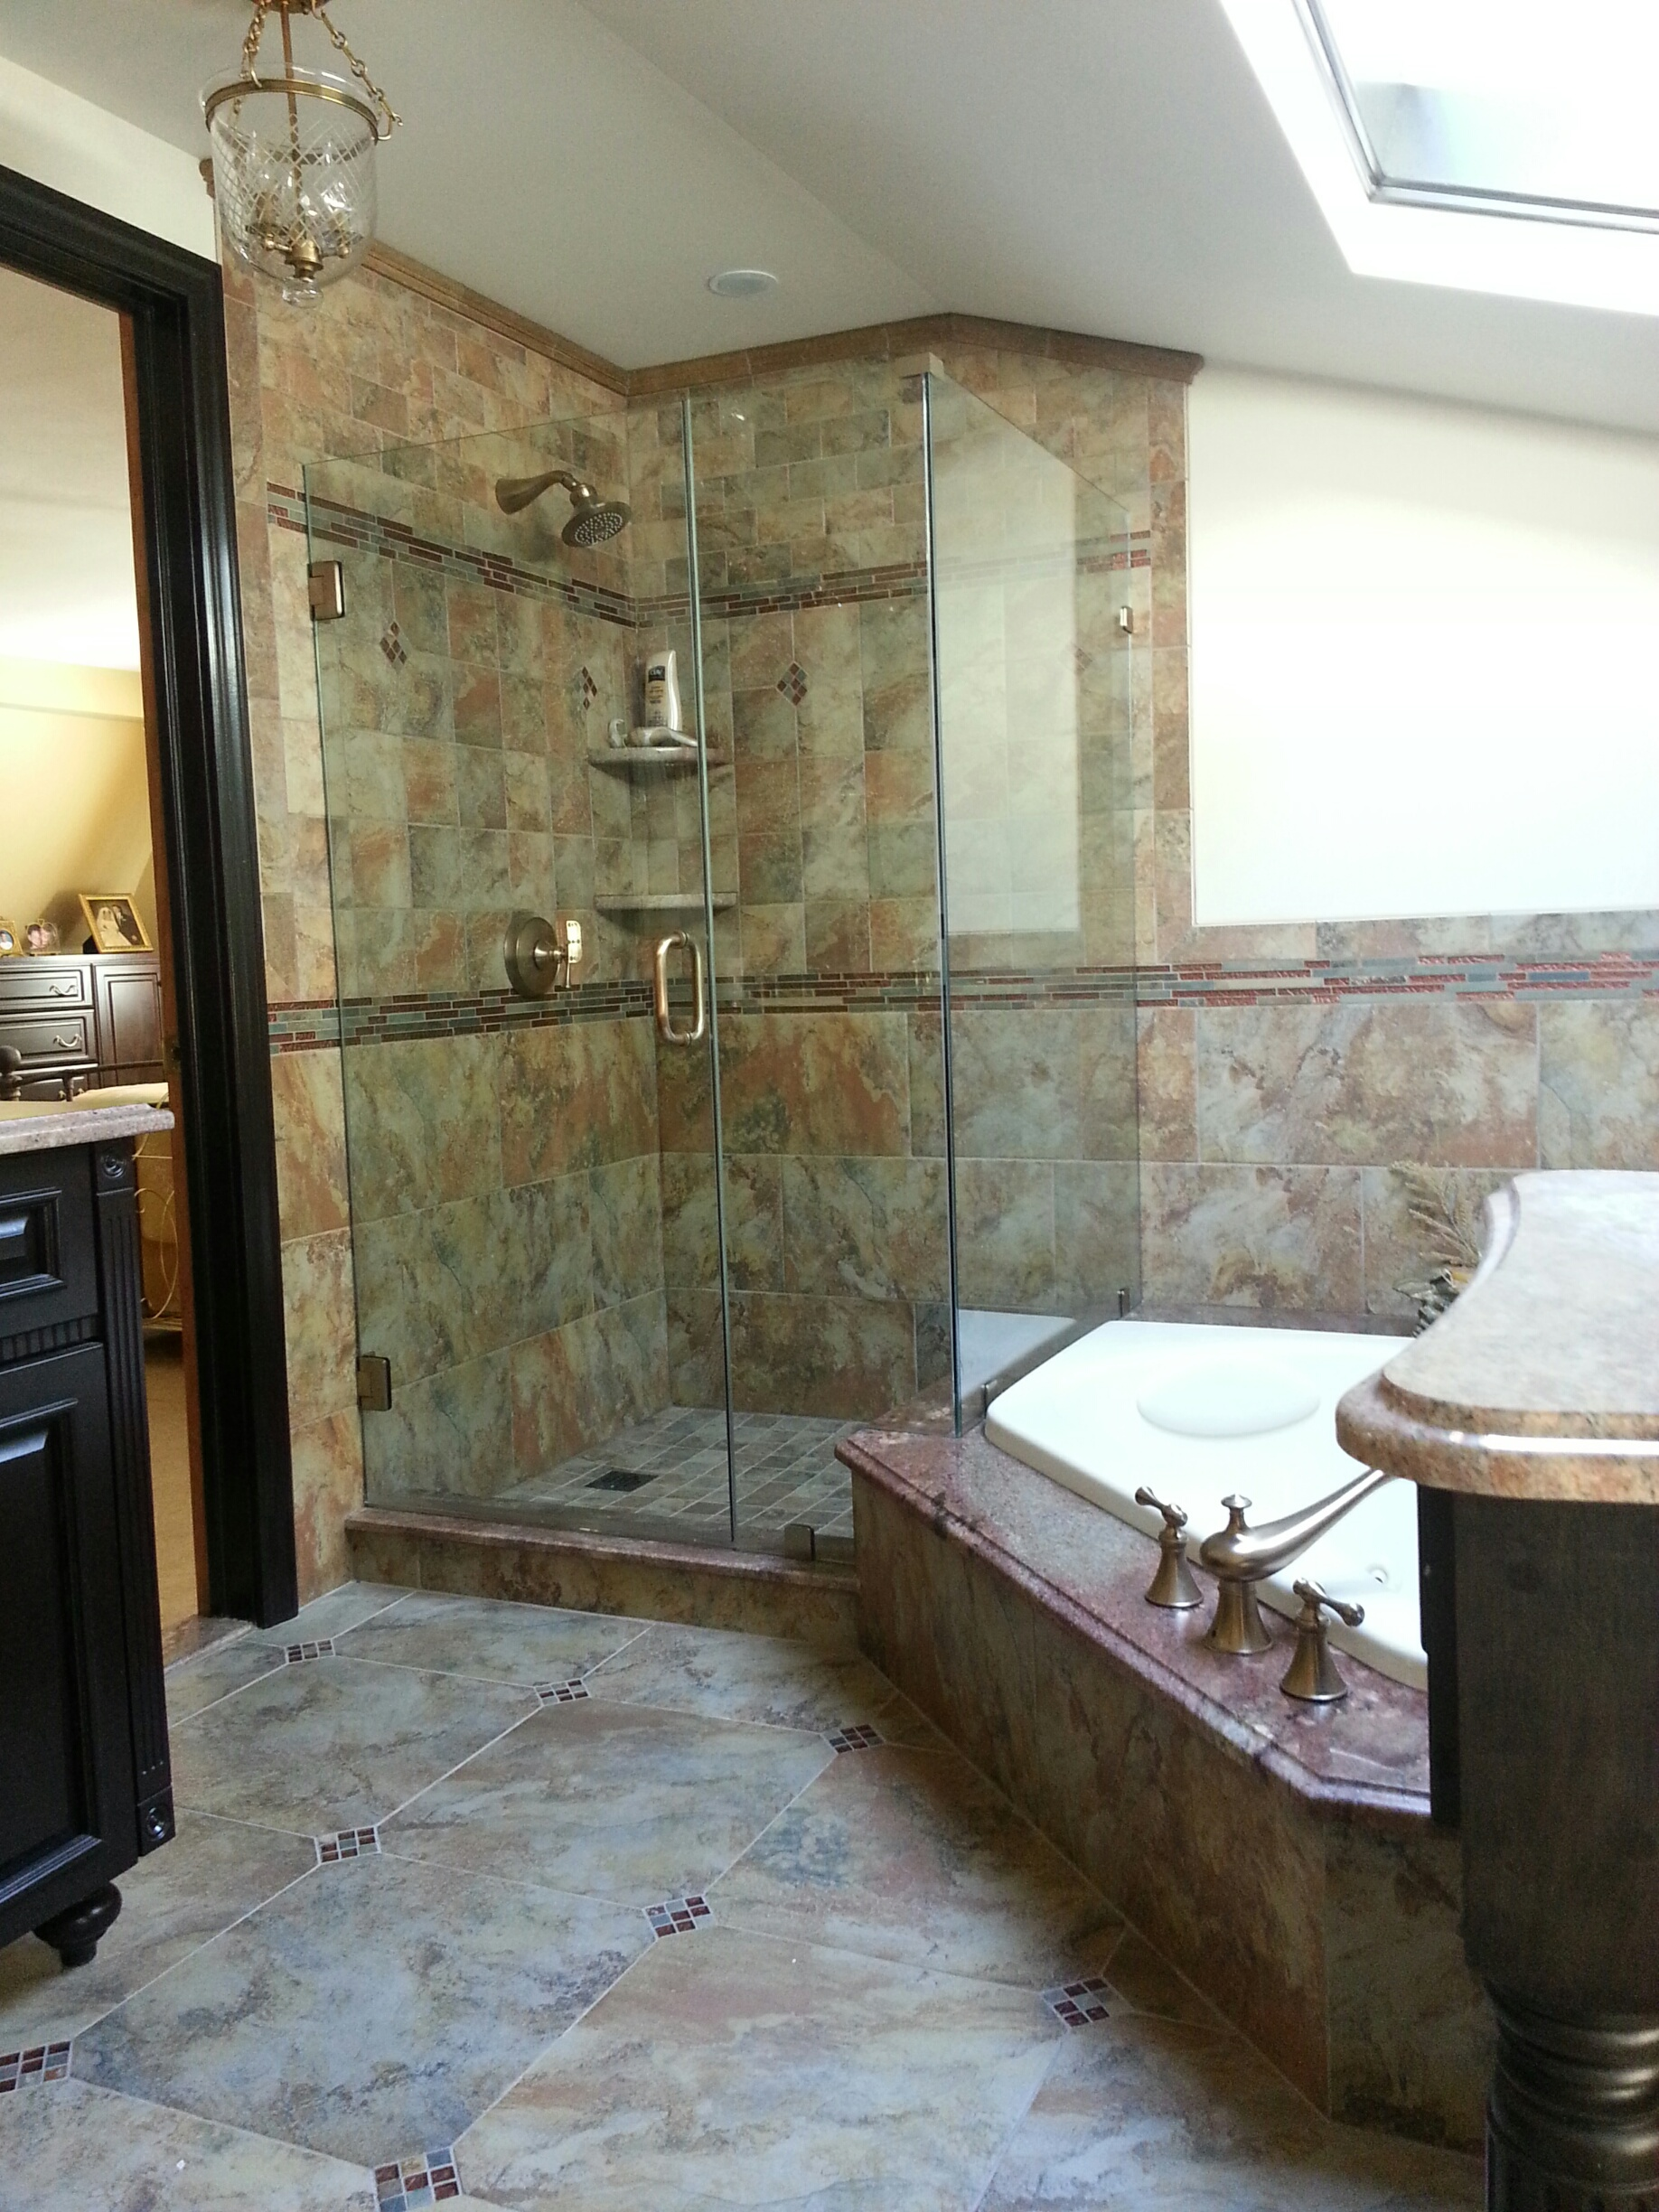 For Homeowners On Long Islandu0027s Suffolk County, Remodeling Your Bathroom Is  Now Anxiety Free, Thanks To The Expertise Of The Trained Professionals At  ...